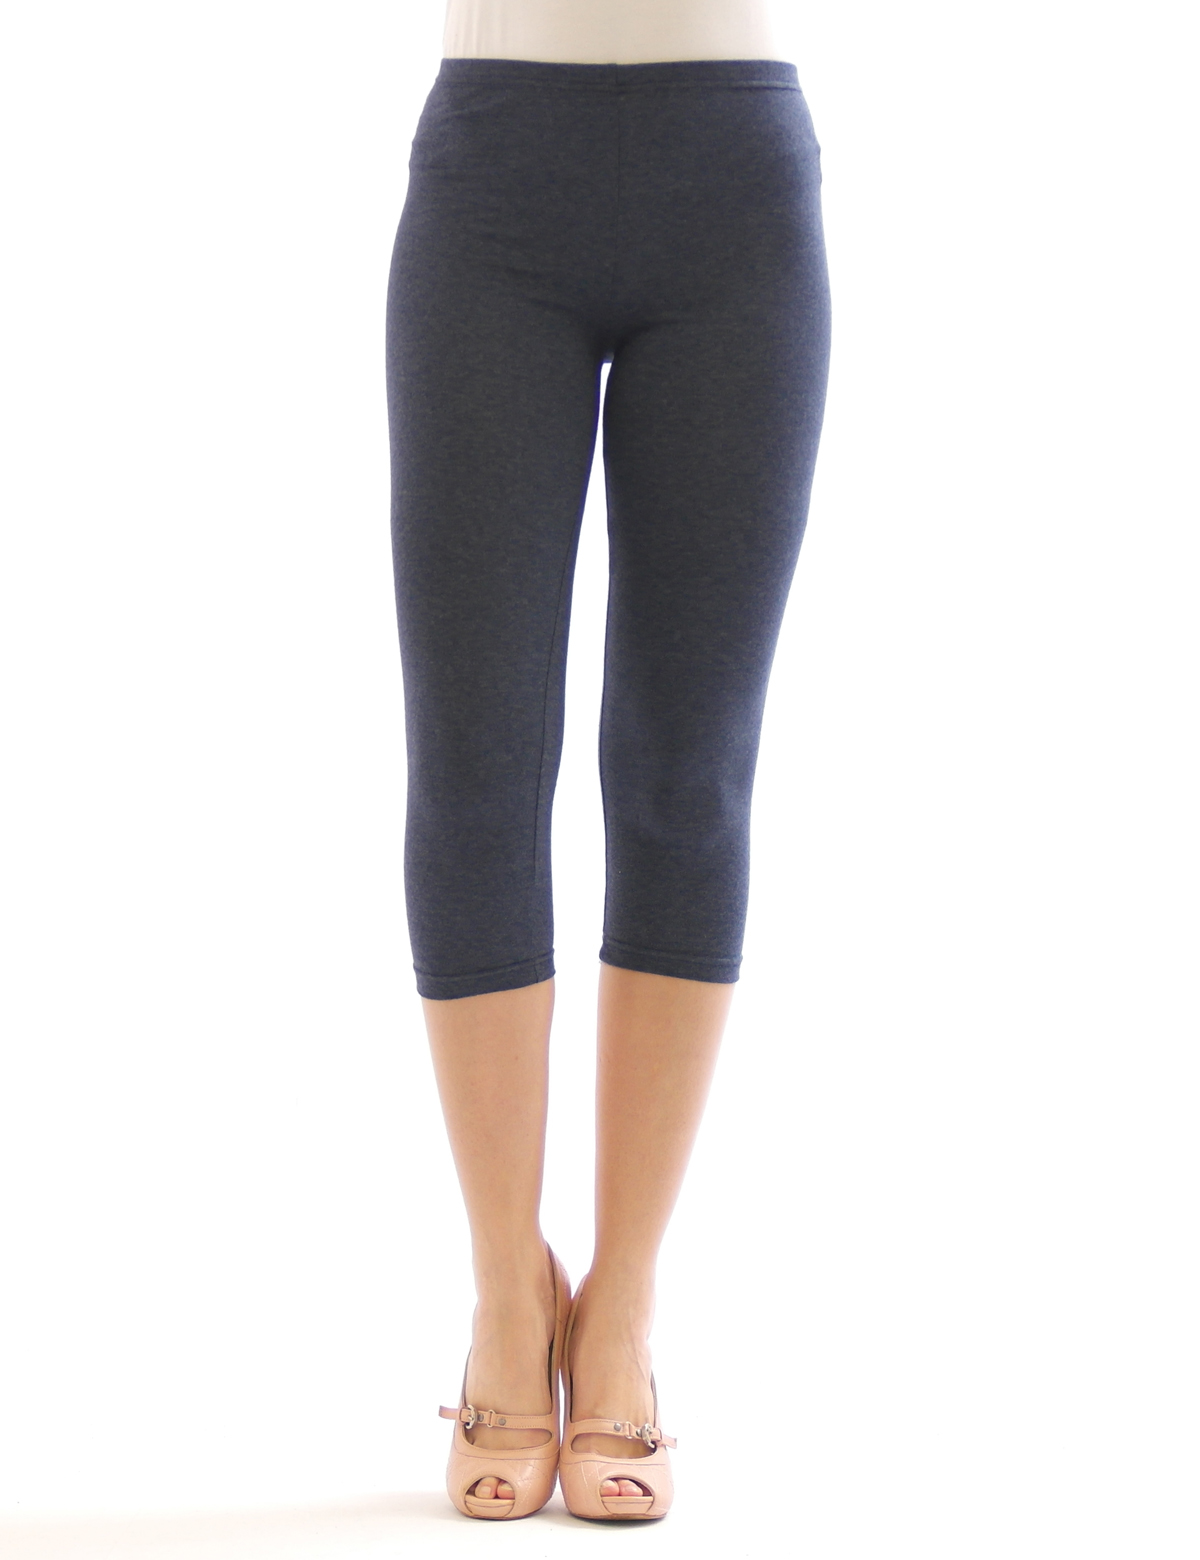 damen 3 4 capri leggings leggins kurze knie hose baumwolle ebay. Black Bedroom Furniture Sets. Home Design Ideas